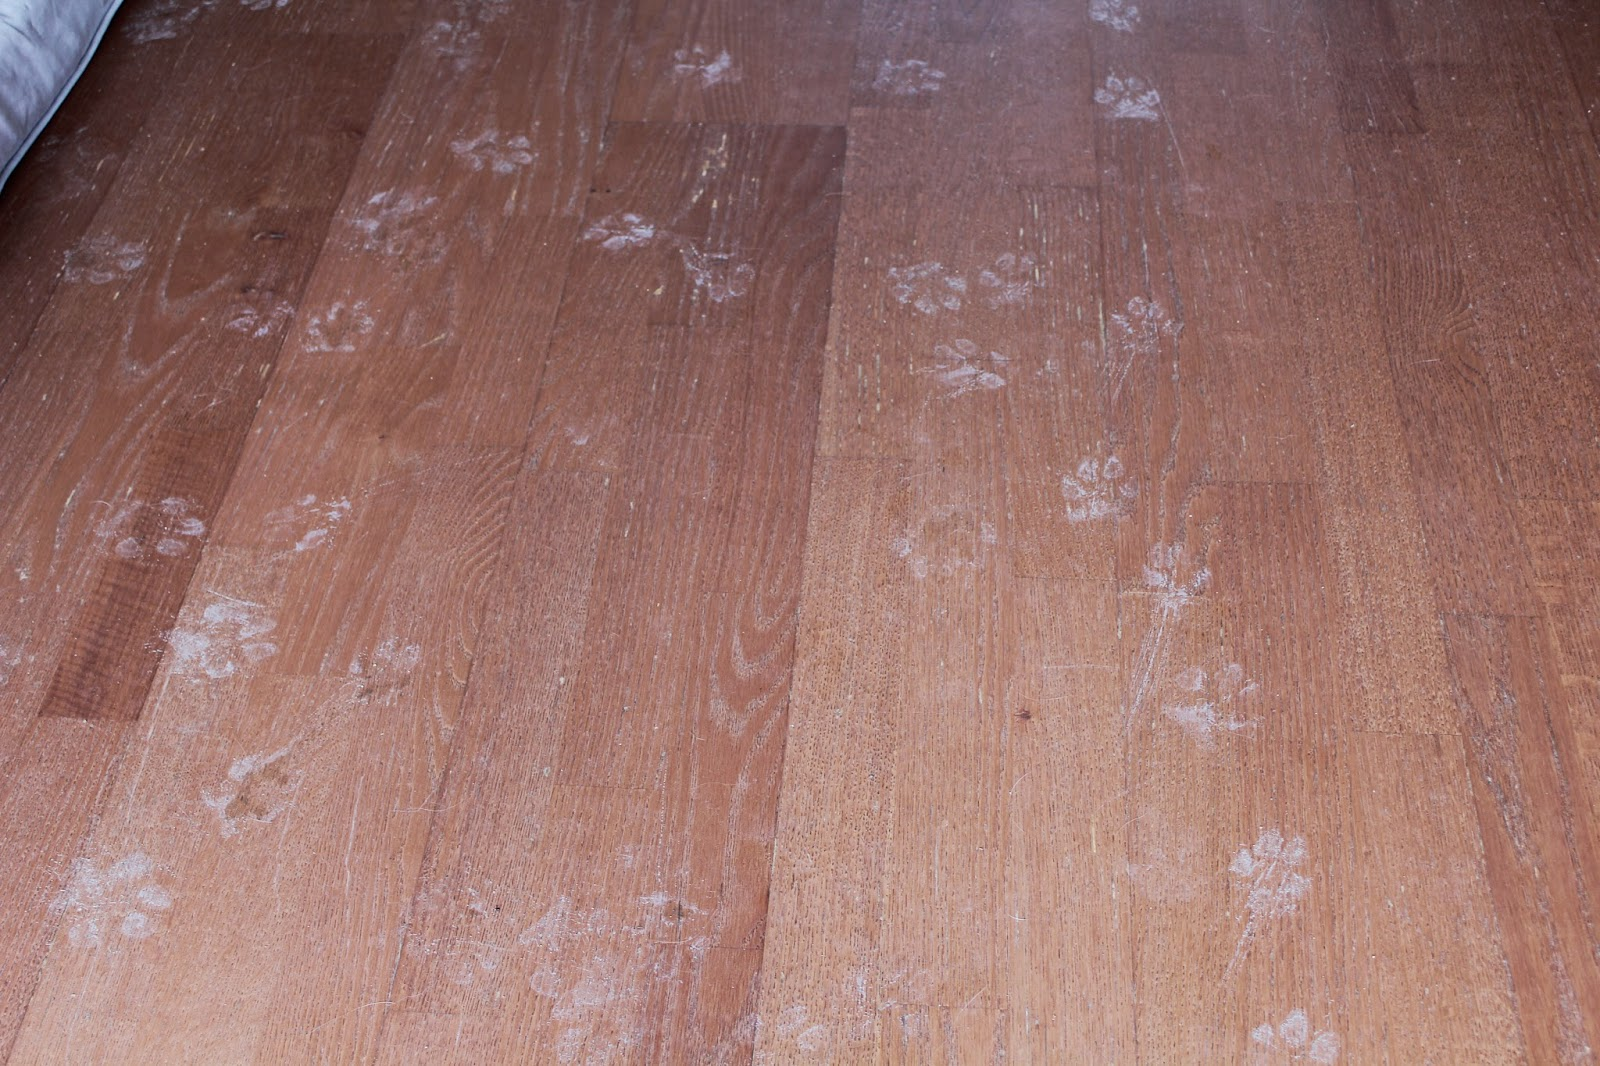 dog paw prints on floor